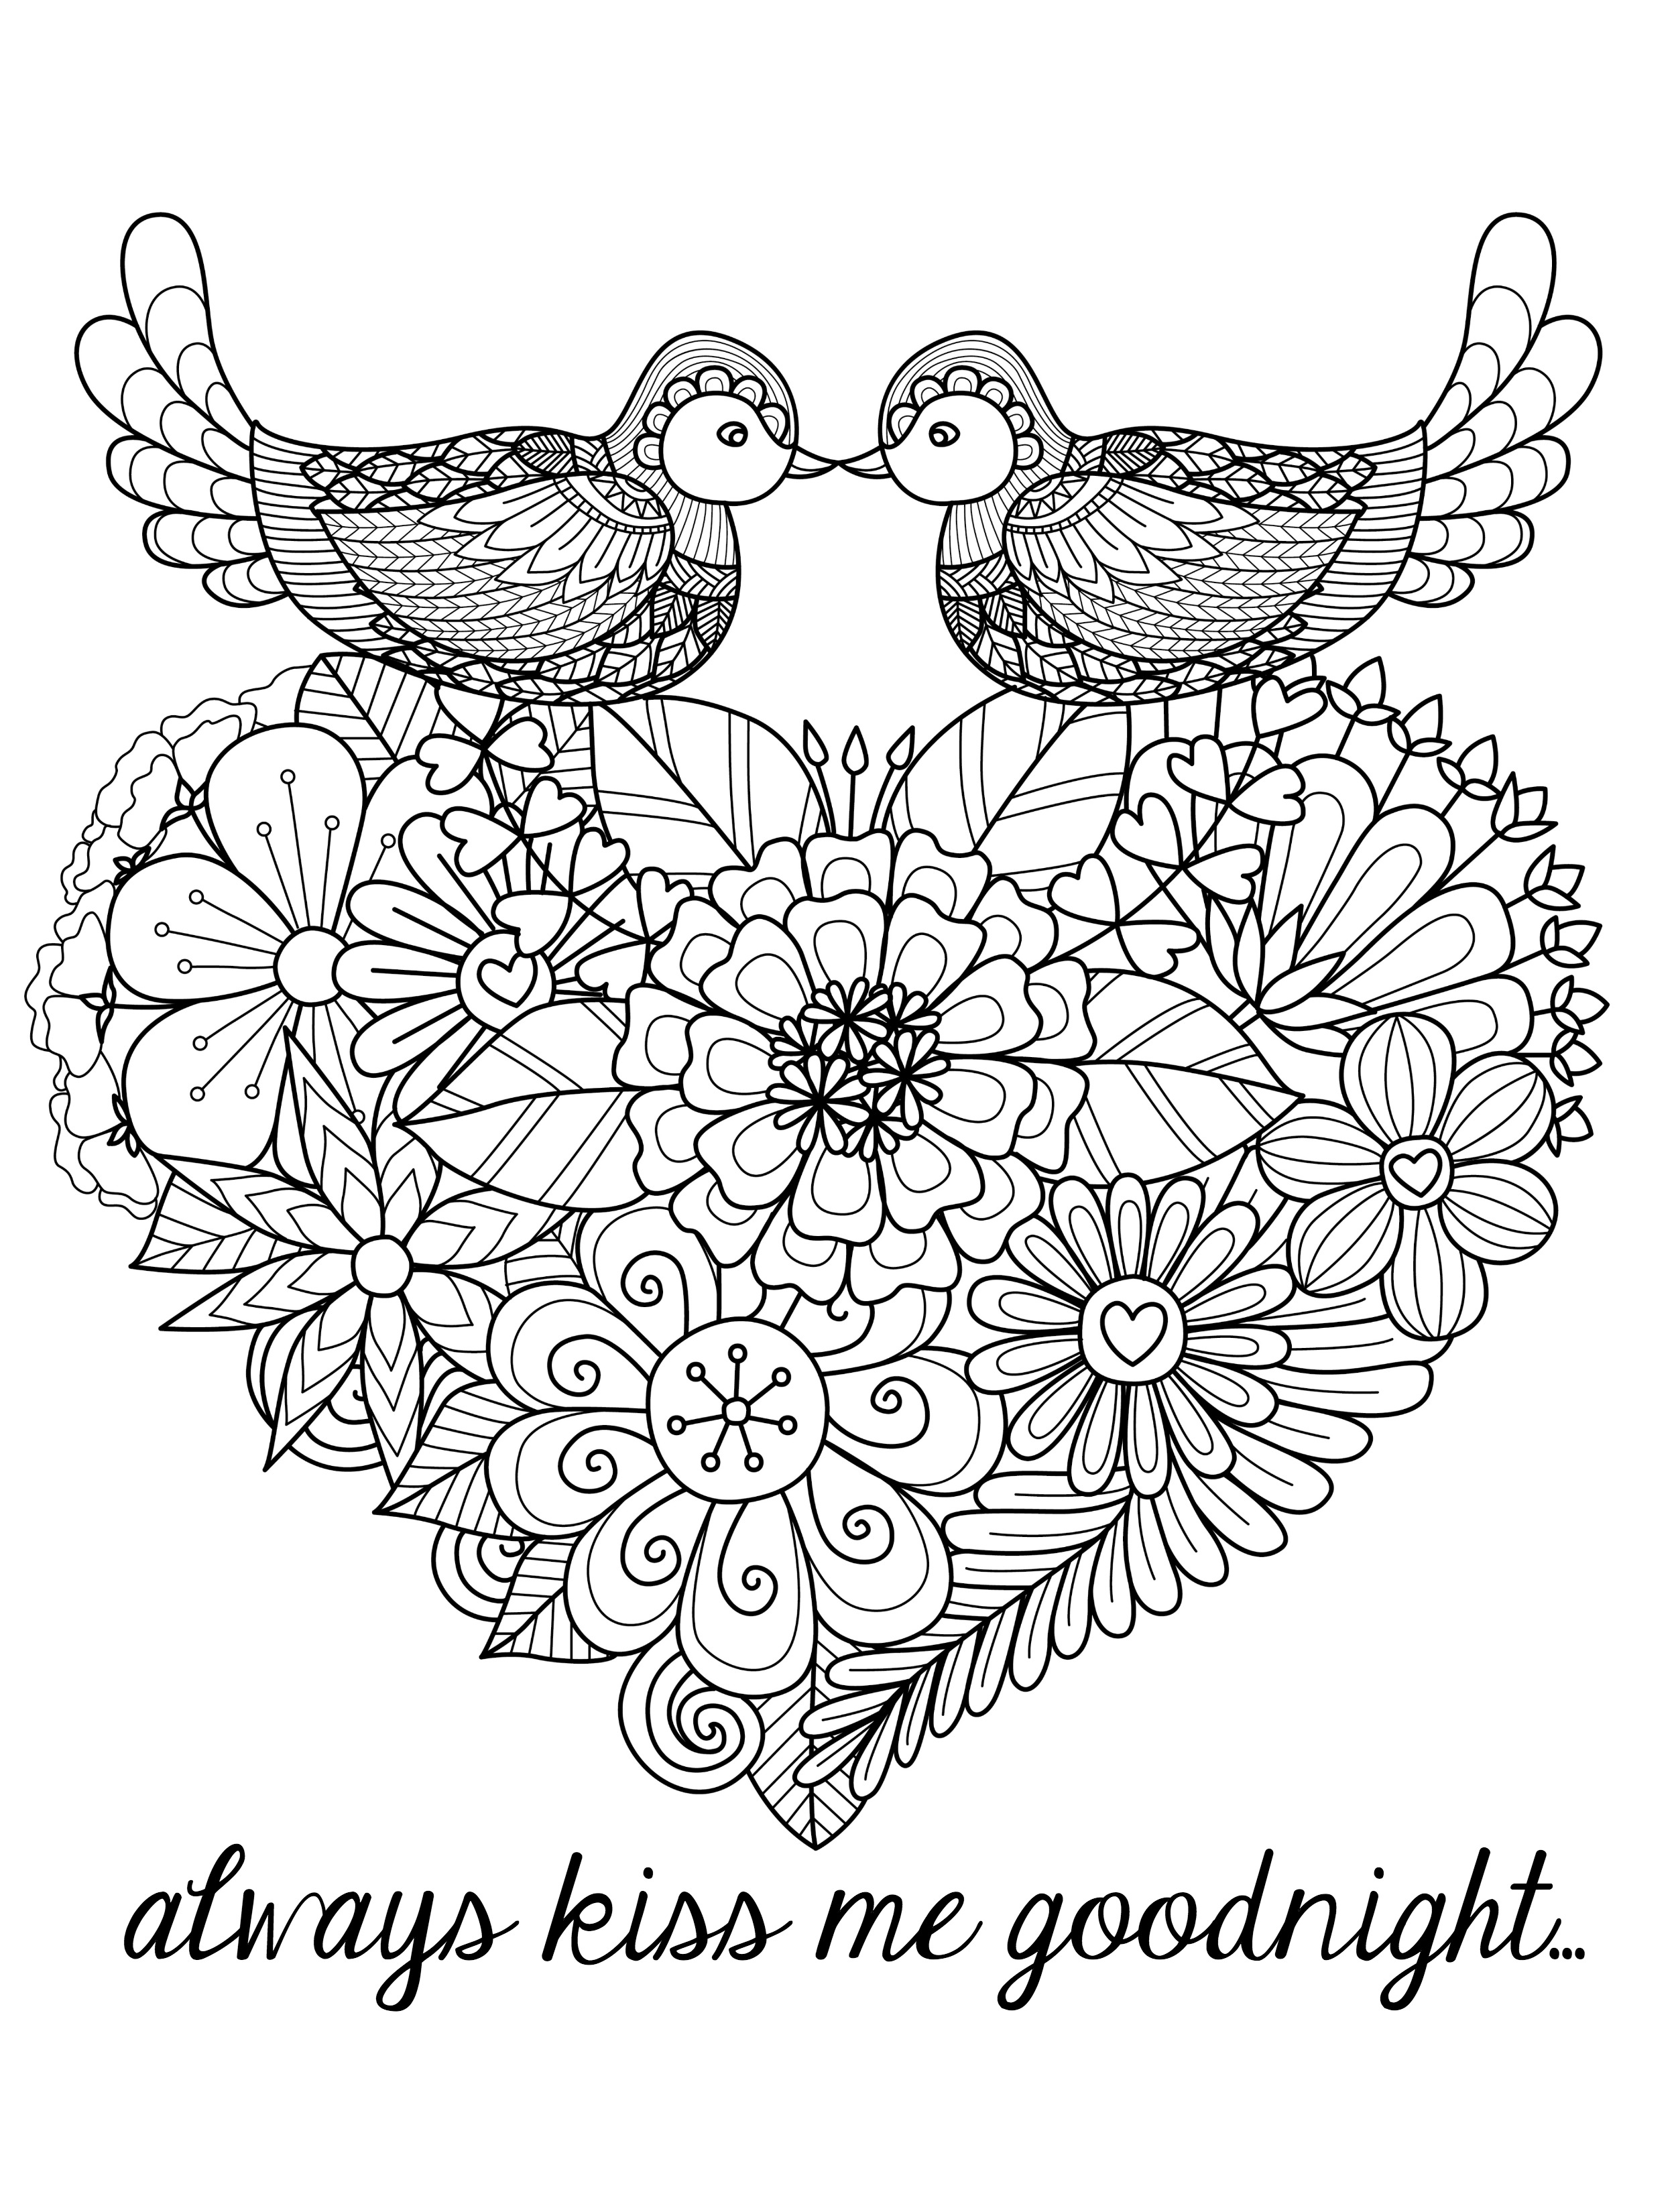 coloring love i love you vector coloring page for adult rounder frame love coloring